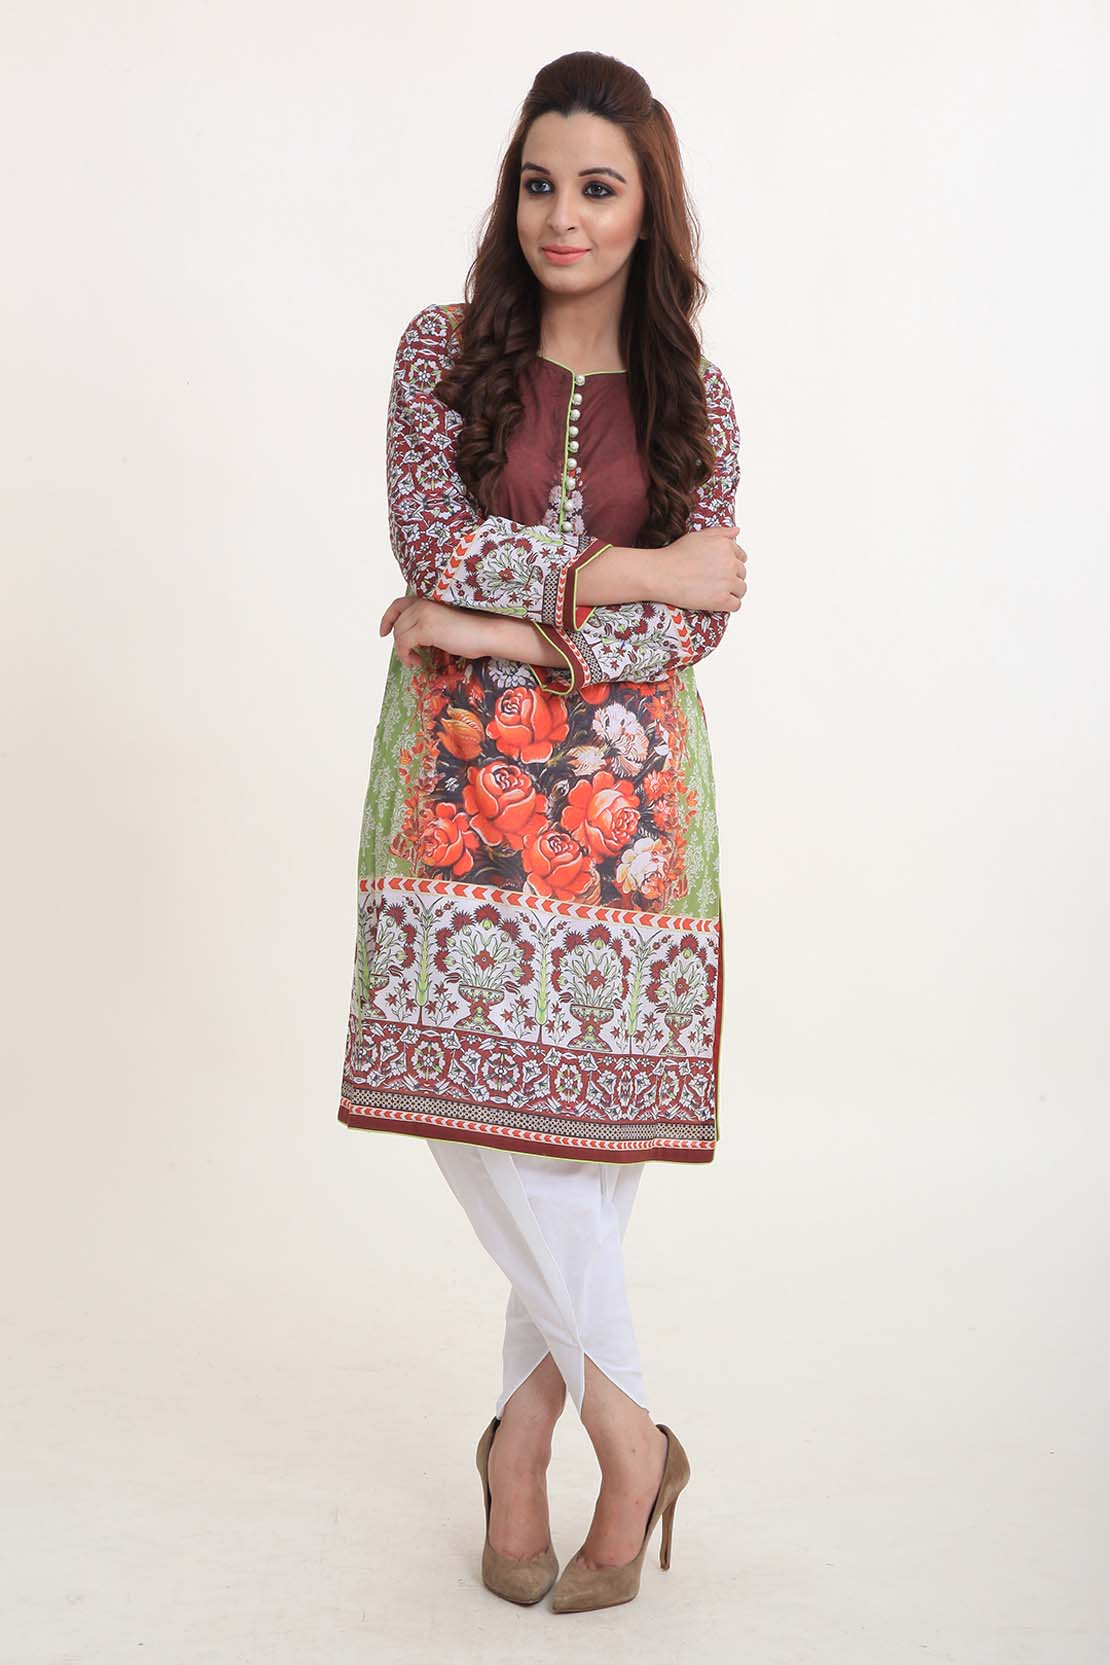 Sindhi Roses Lawn Shirt By Bareeze For Eid 2016